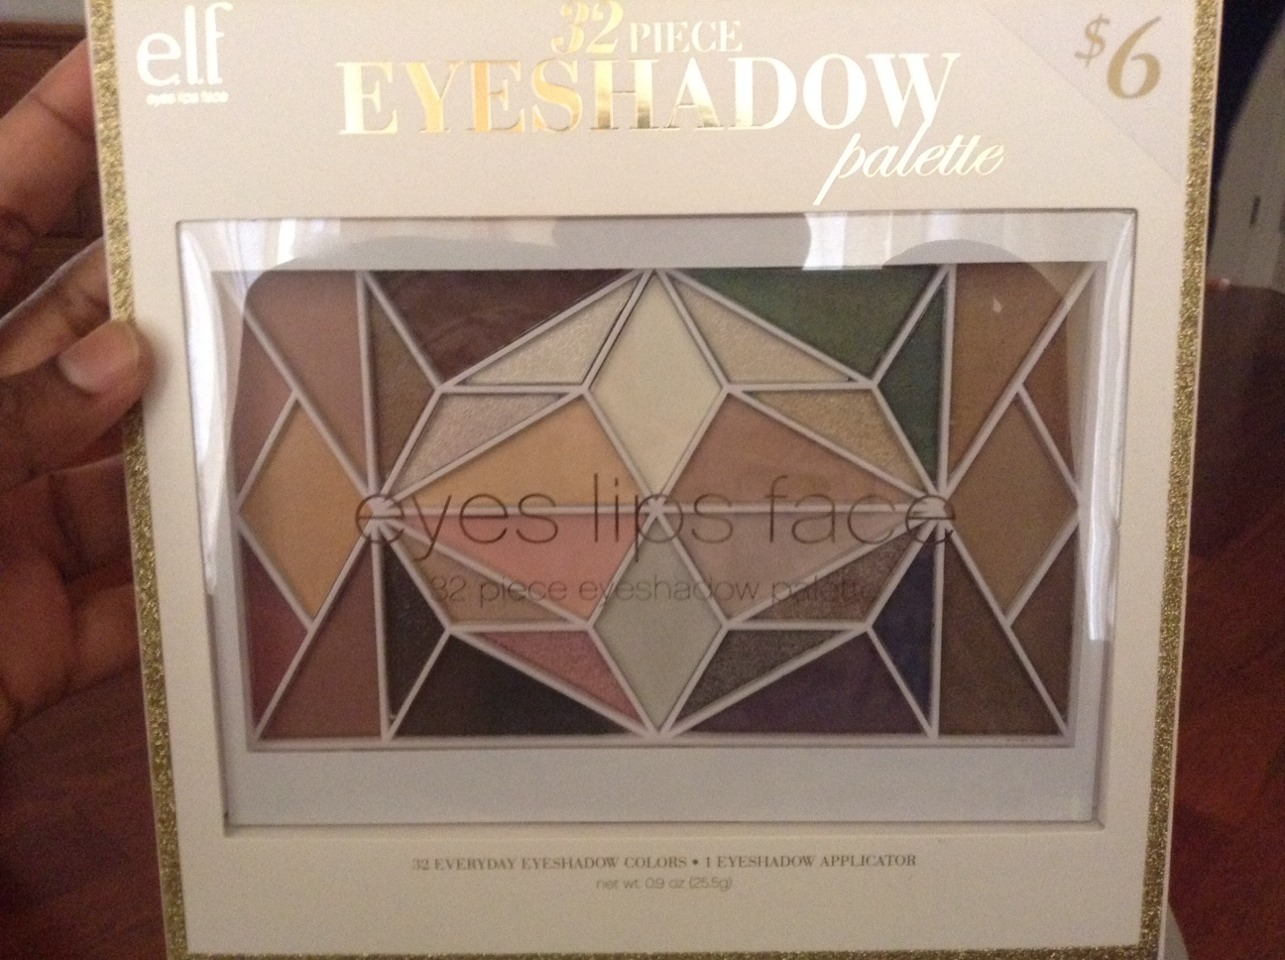 32 eyeshadow palette for only $6! That's a steal! 😃😂❤️